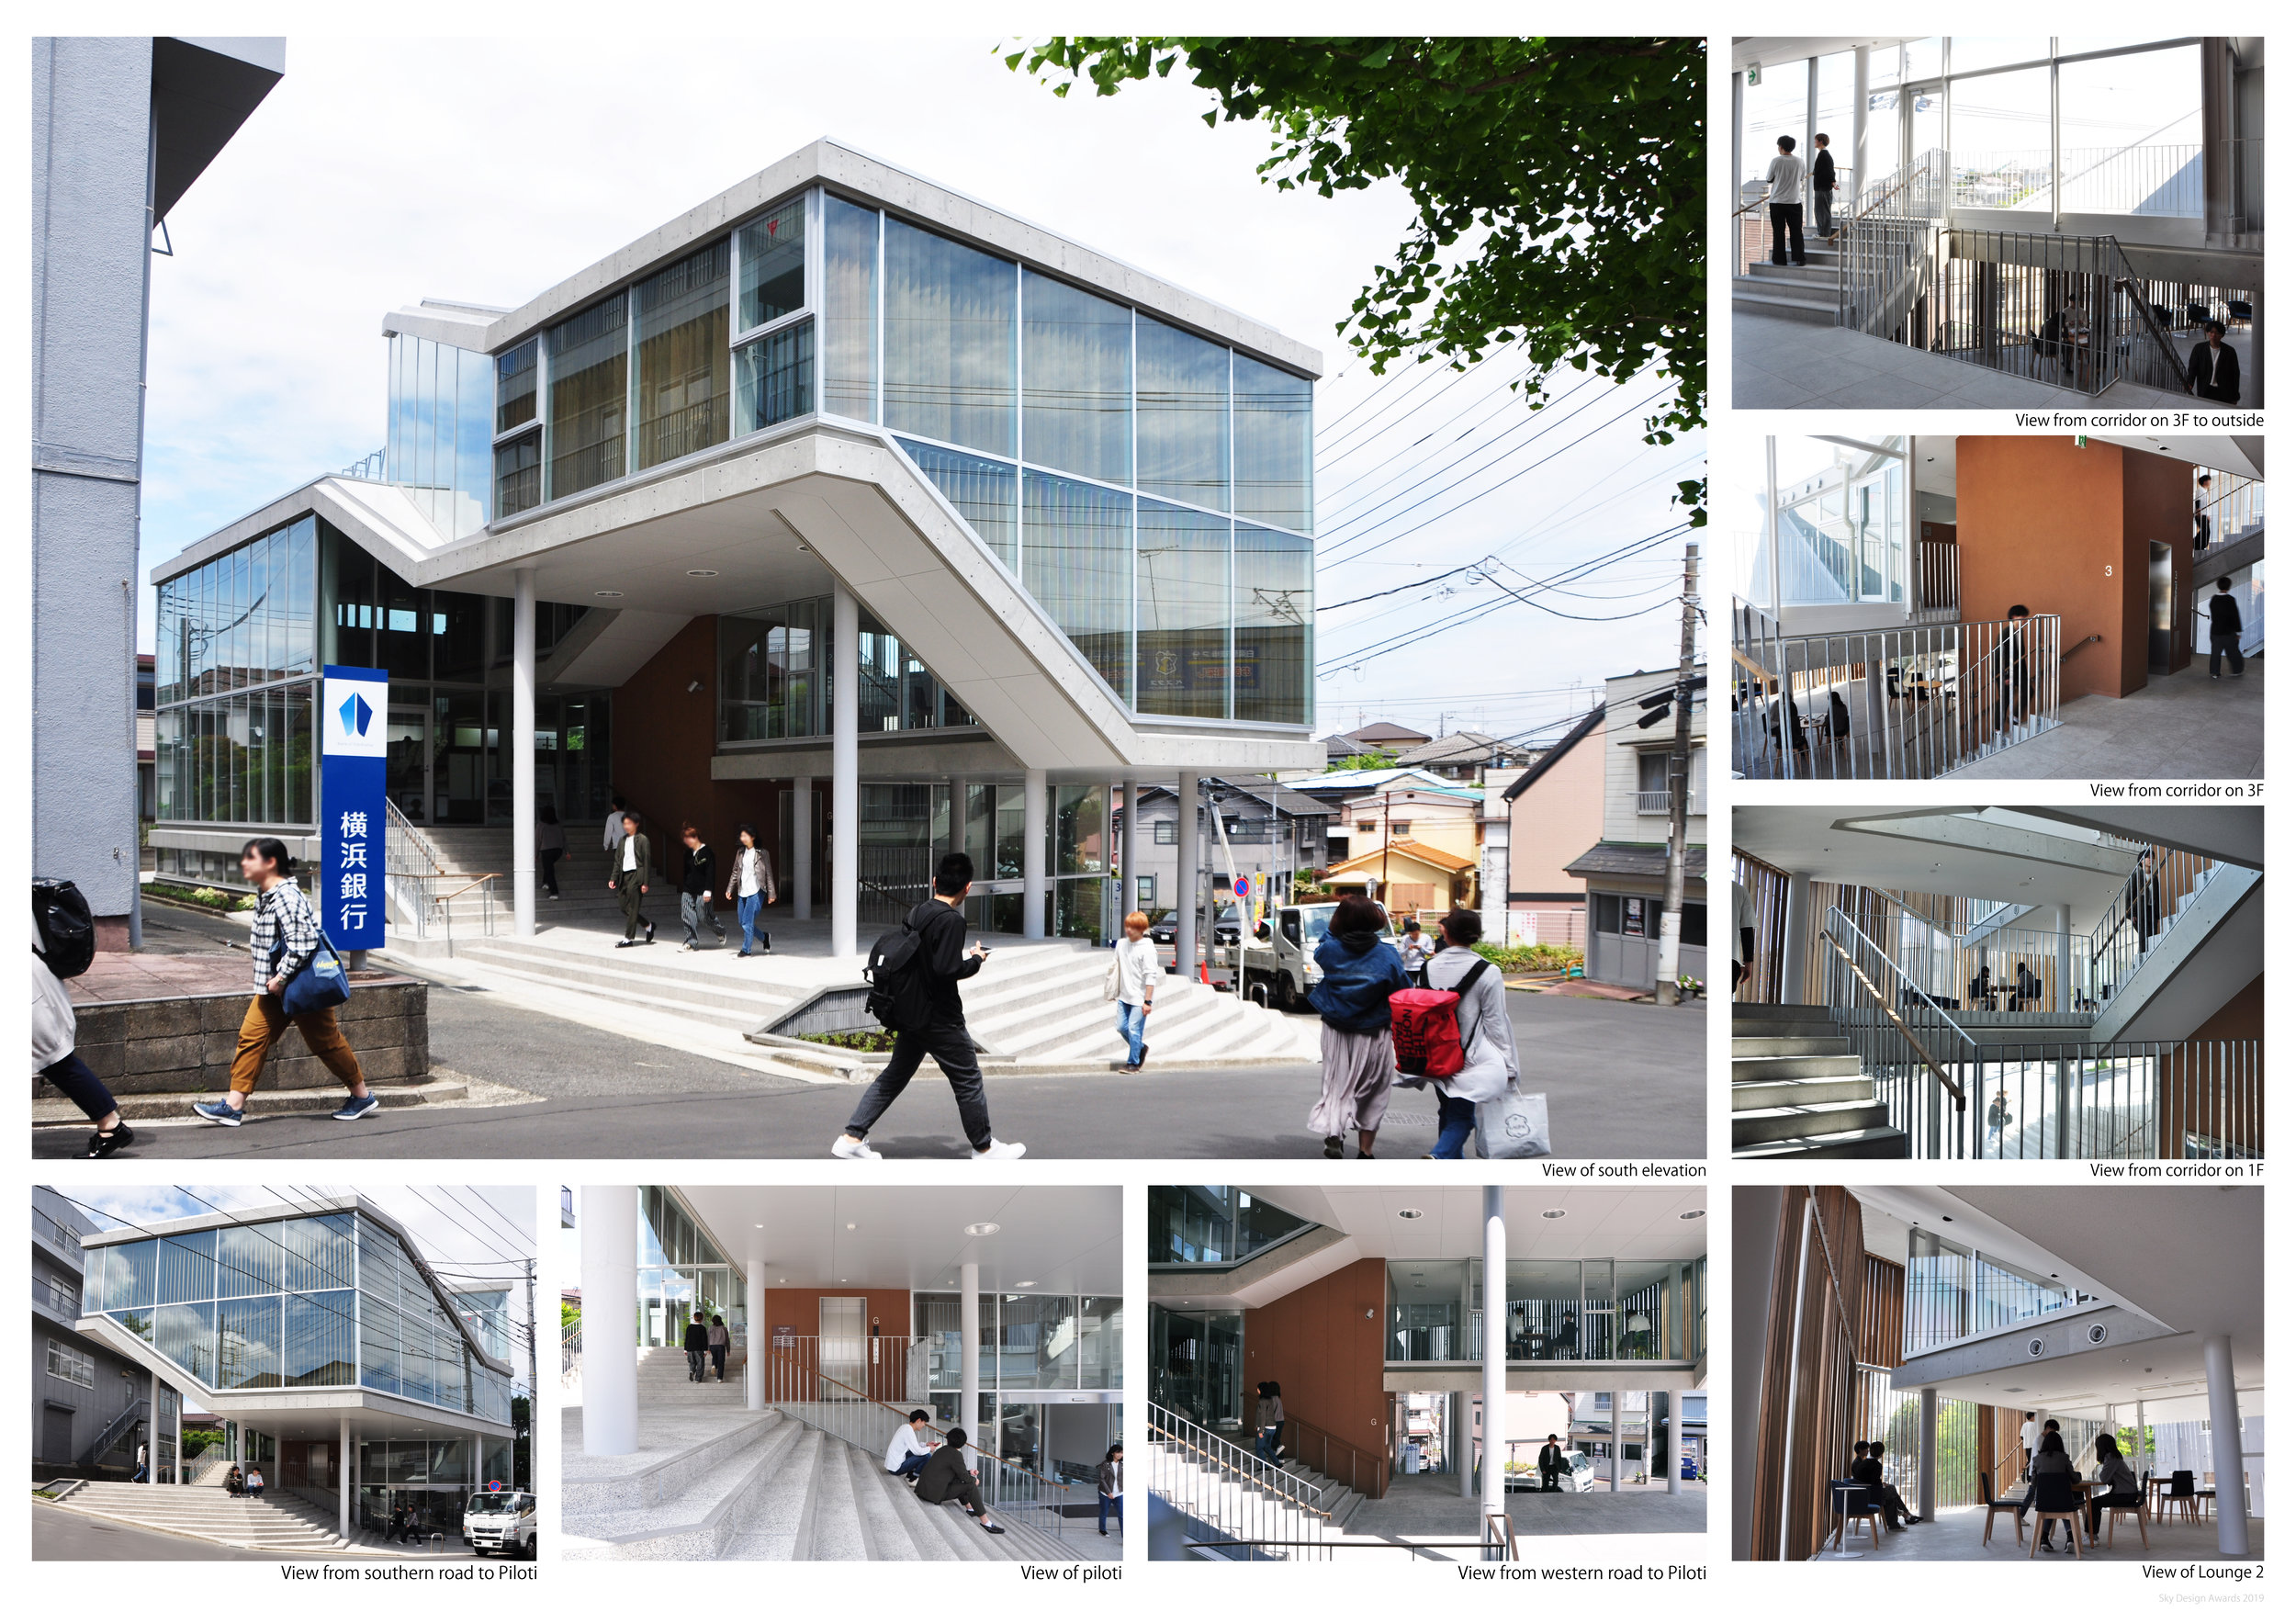 Project Name: Building No.30 in Yokohama campus of Kanagawa University - Design by: Mitari ArchitectsArchitecture Division: Institution & EducationalWebsite: http://www.mitari-ar.com